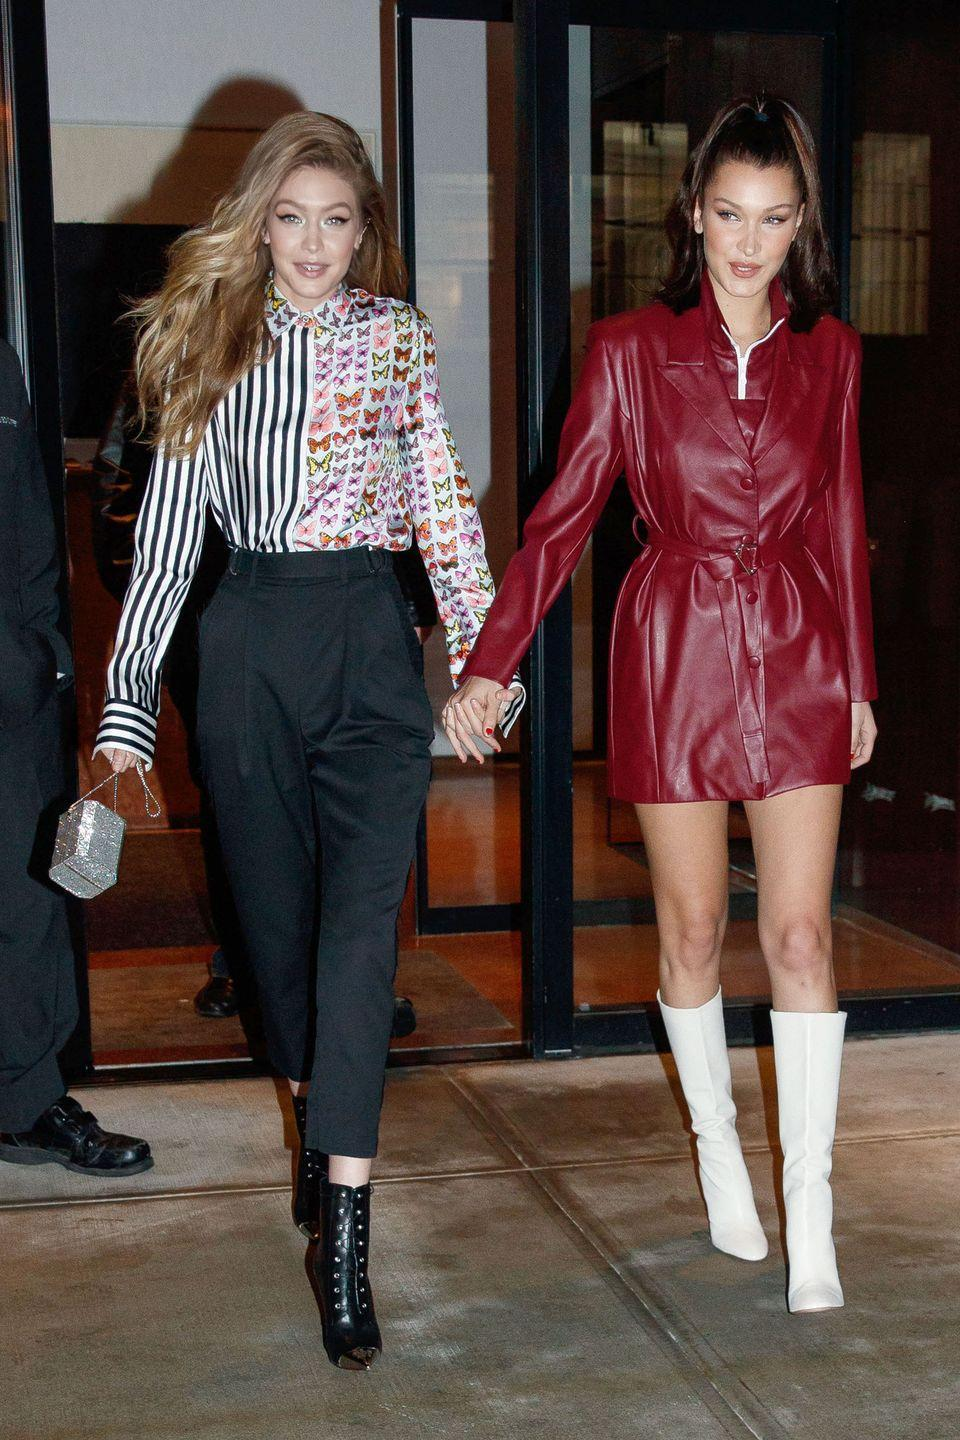 <p>In a red leather coatdress and white boots while out with Gigi Hadid in a printed shirt, high-waisted pants, black ankle boots, and Amanda Pearl mini bag, while out in NYC.</p>